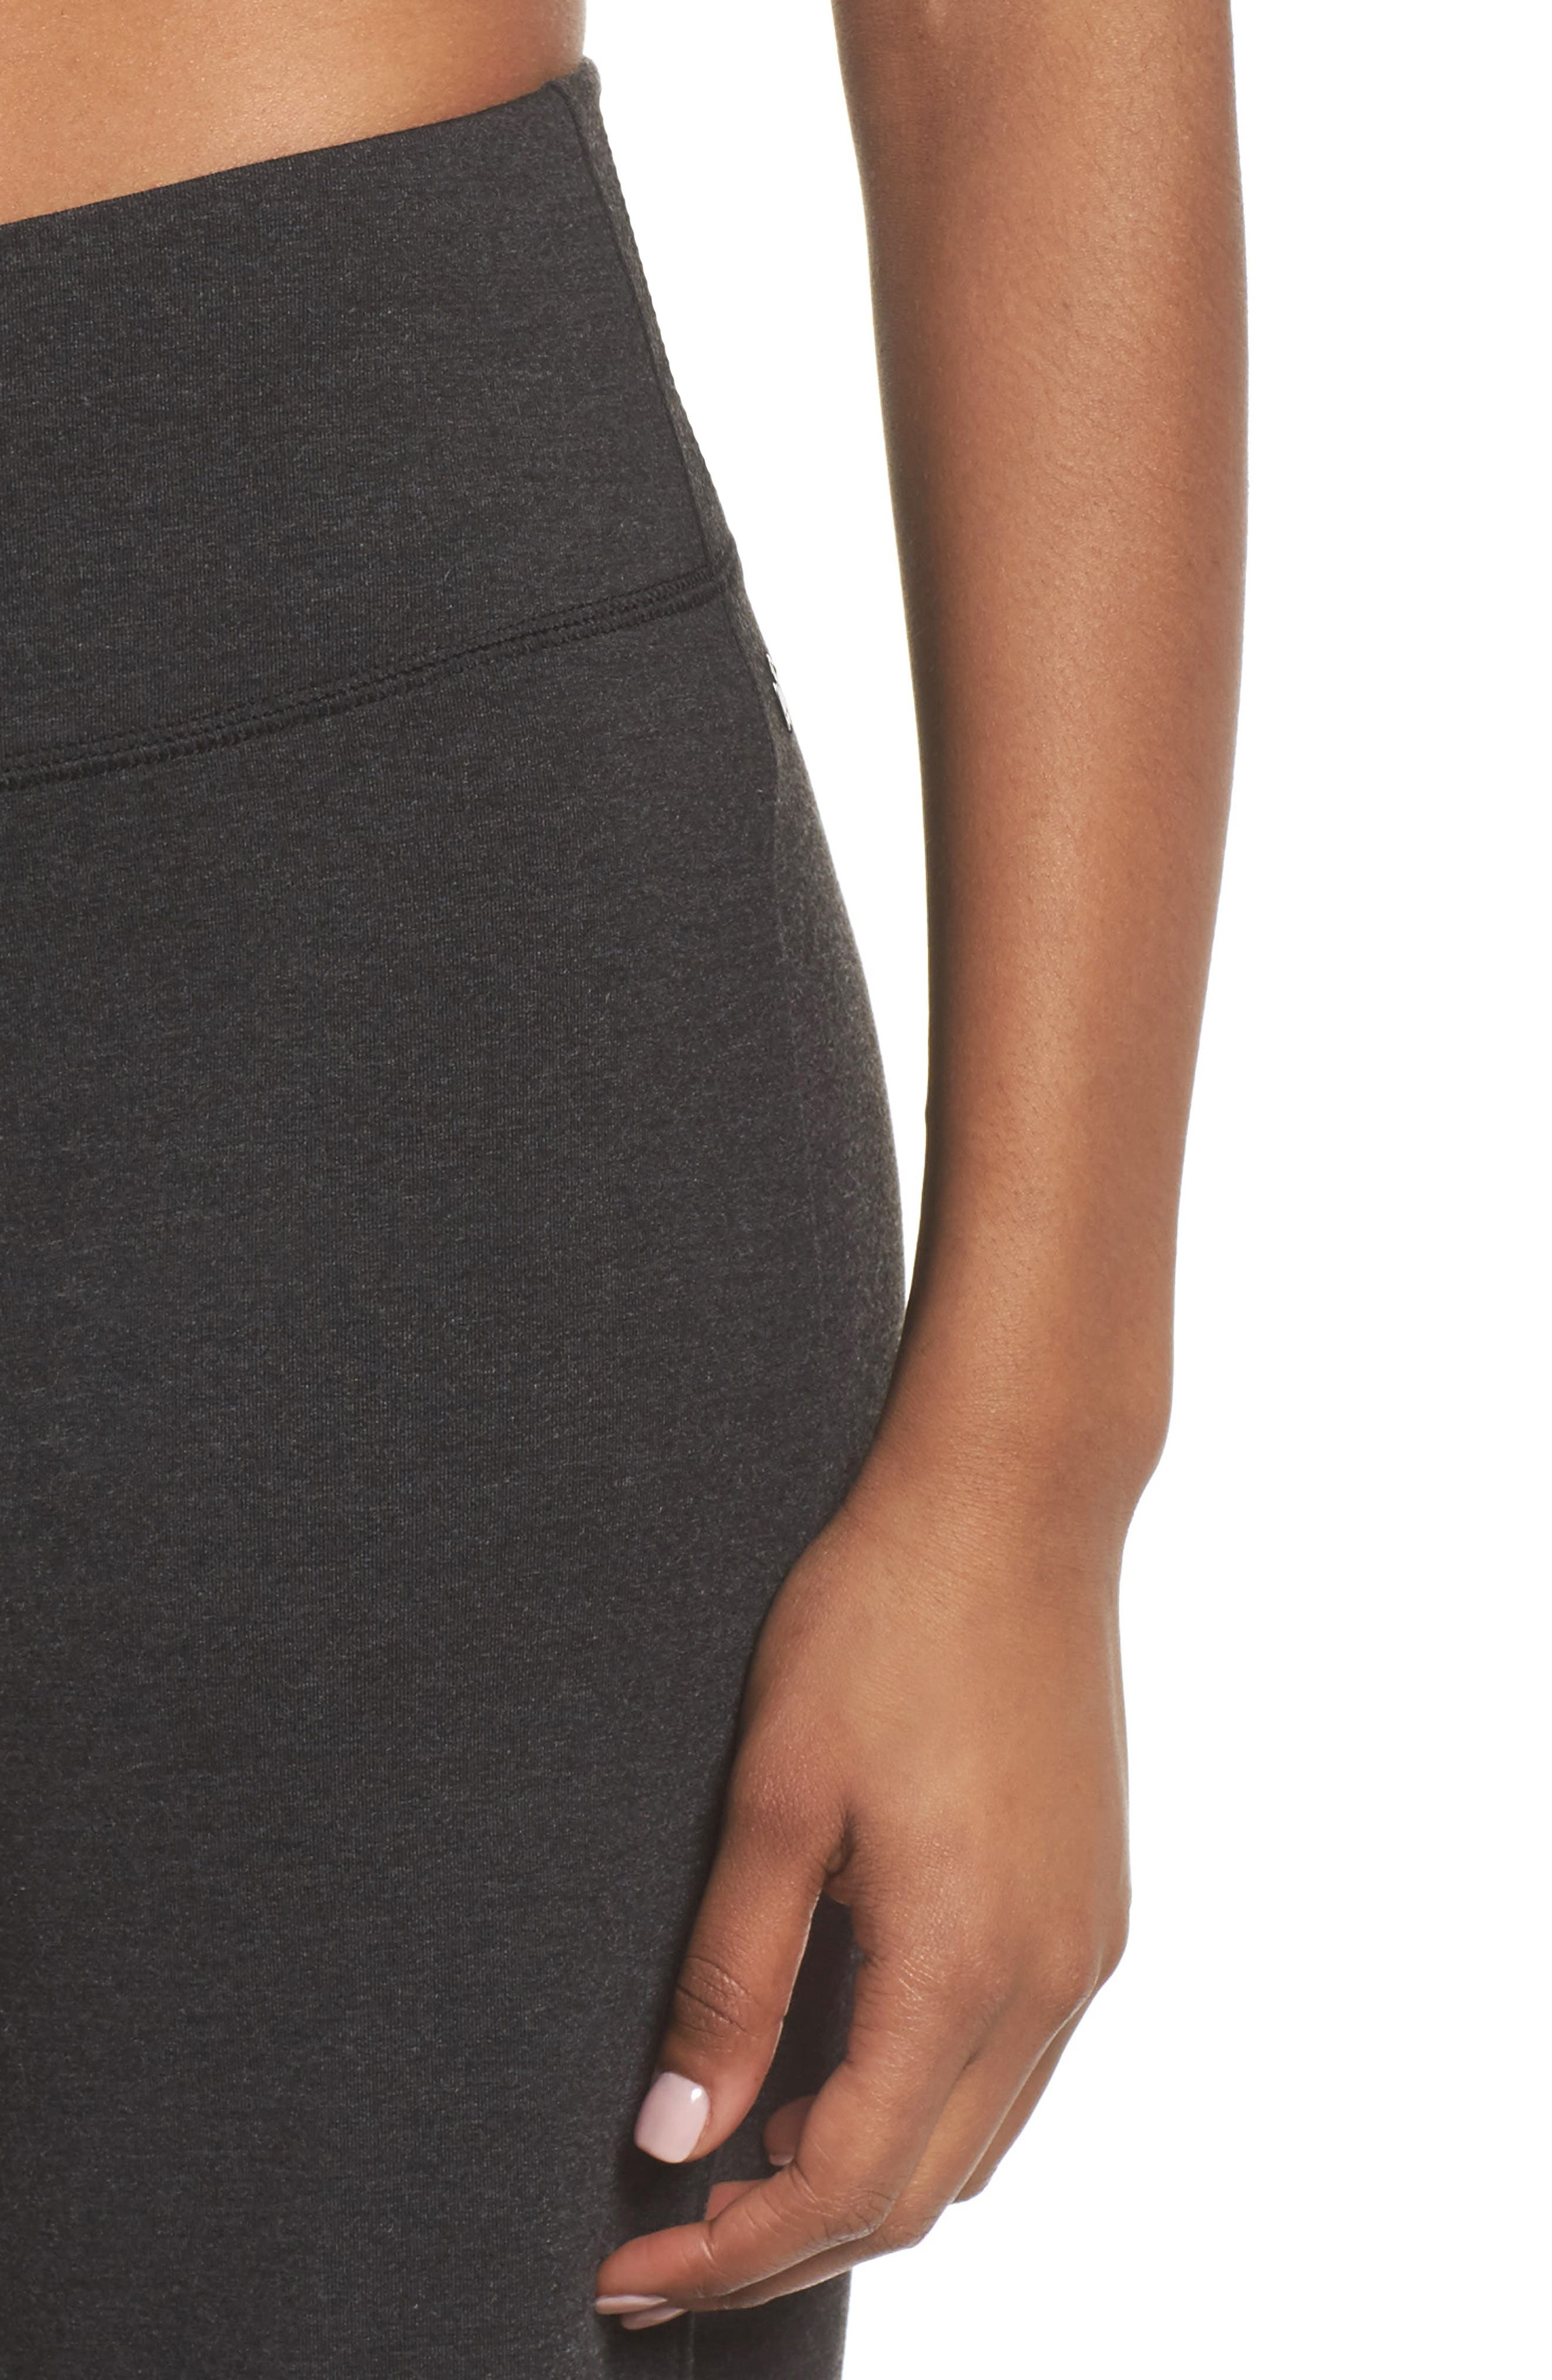 Go With The Flow Pants,                             Alternate thumbnail 6, color,                             Grey Dark Charcoal Heather